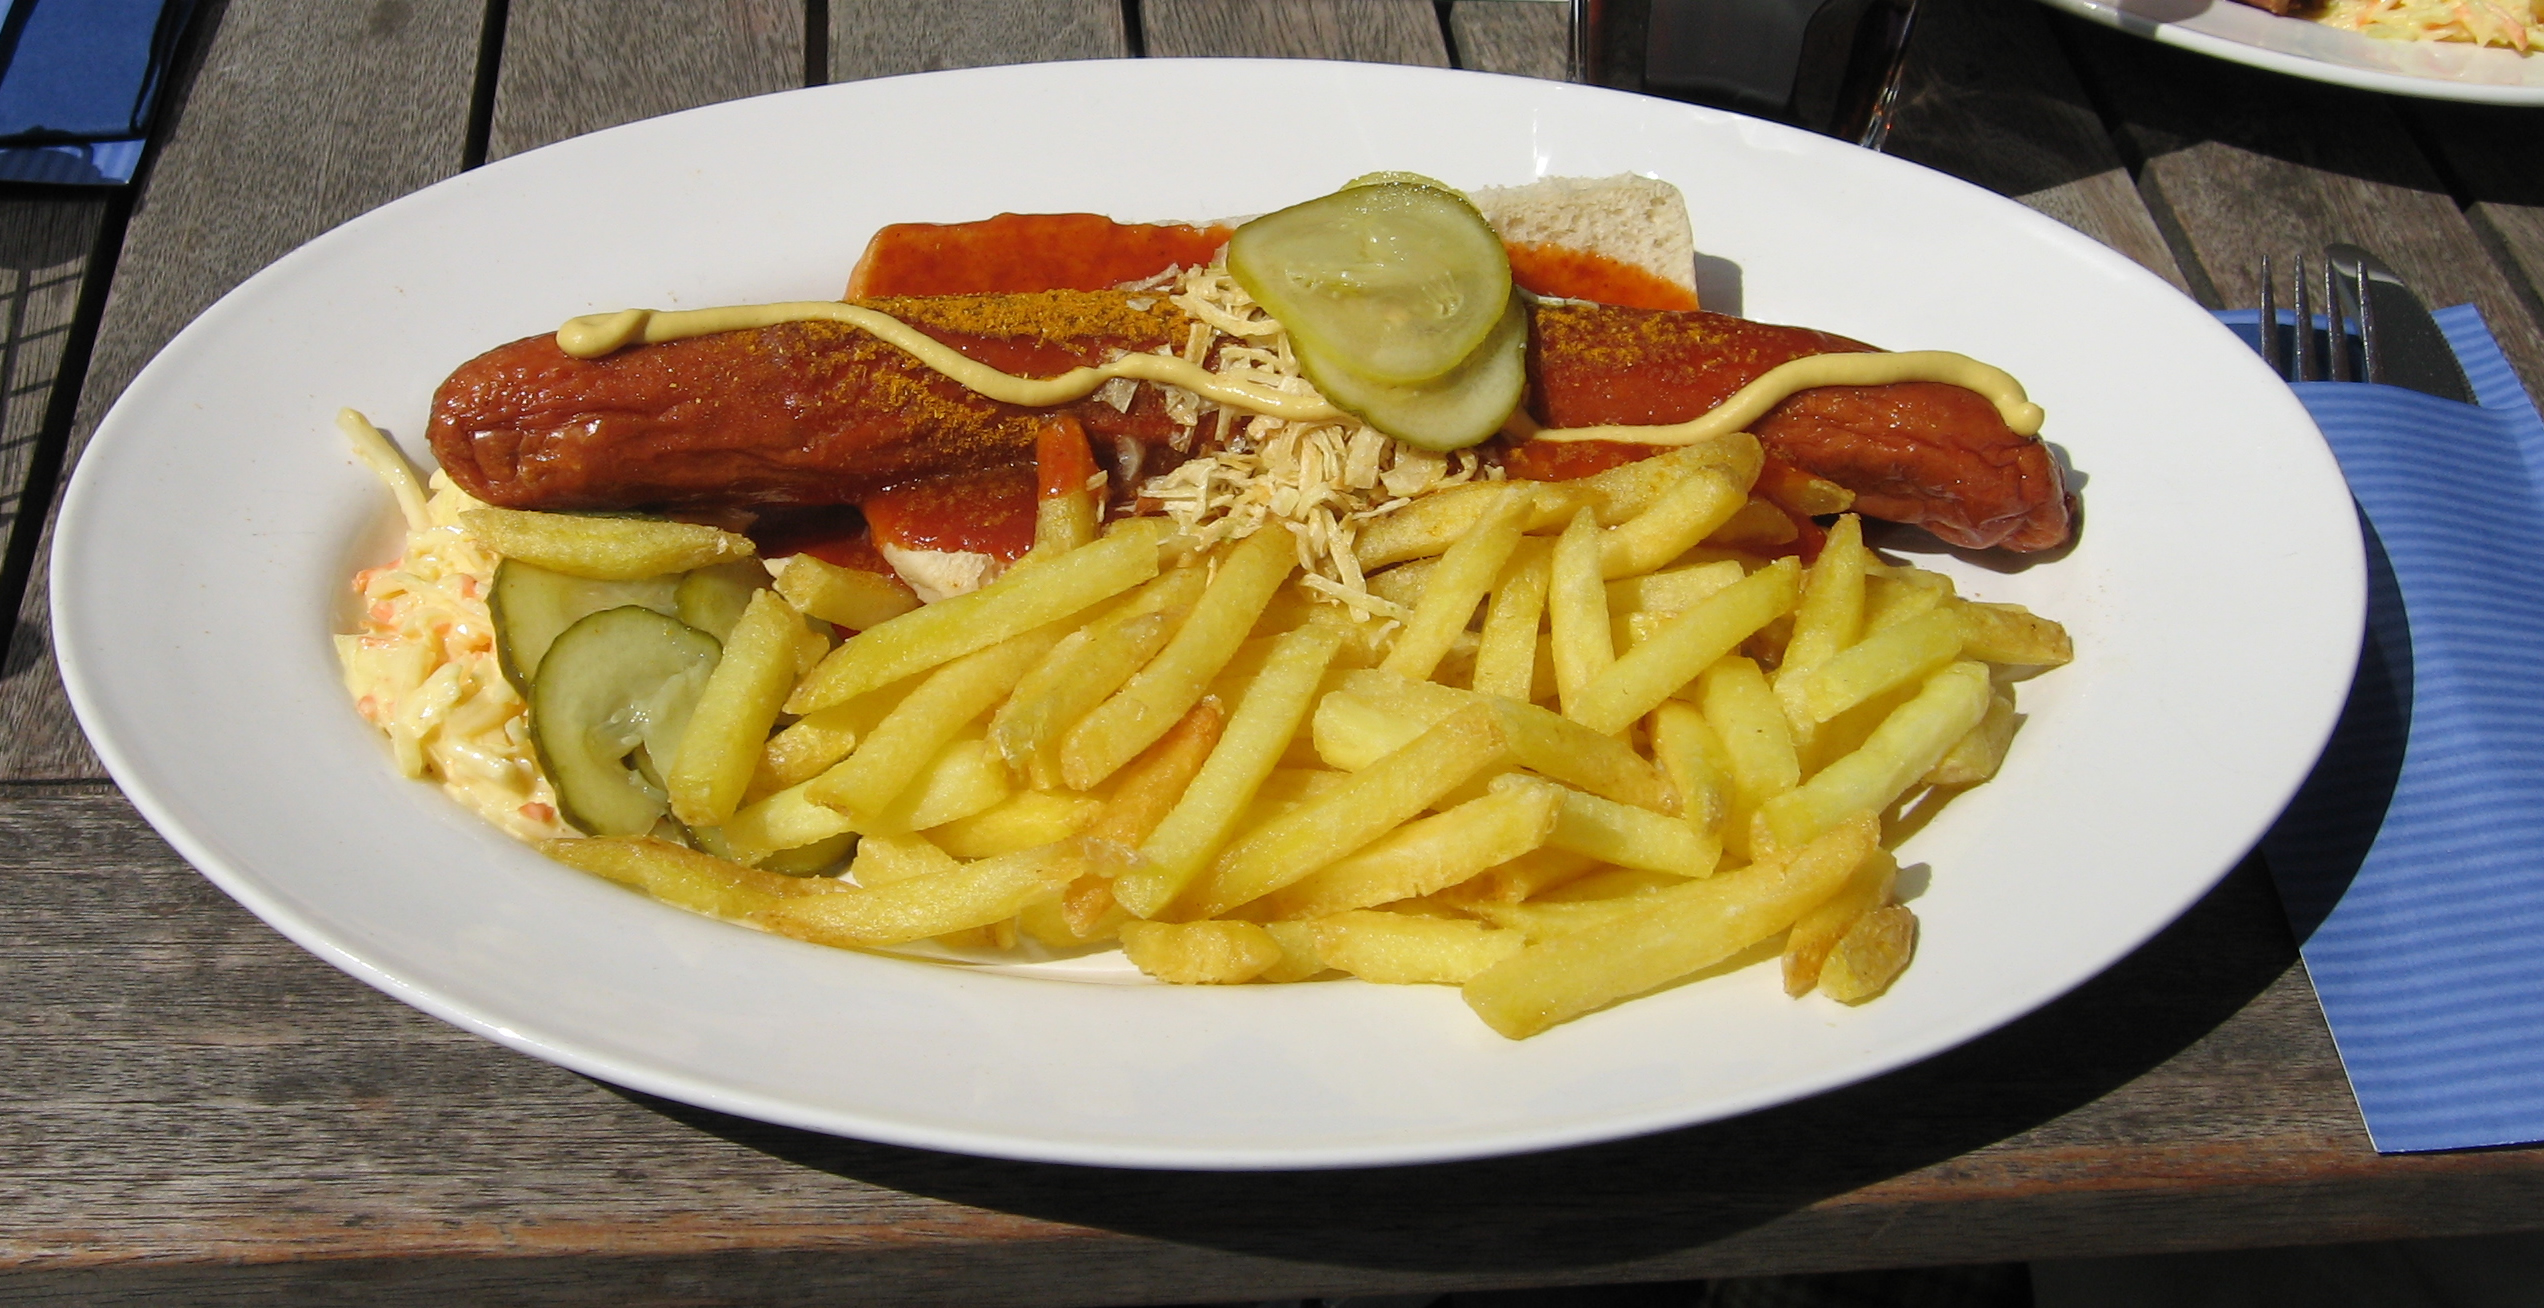 https://upload.wikimedia.org/wikipedia/commons/1/1c/Currywurst_pommes_vw_autostadt_cylinder.jpg